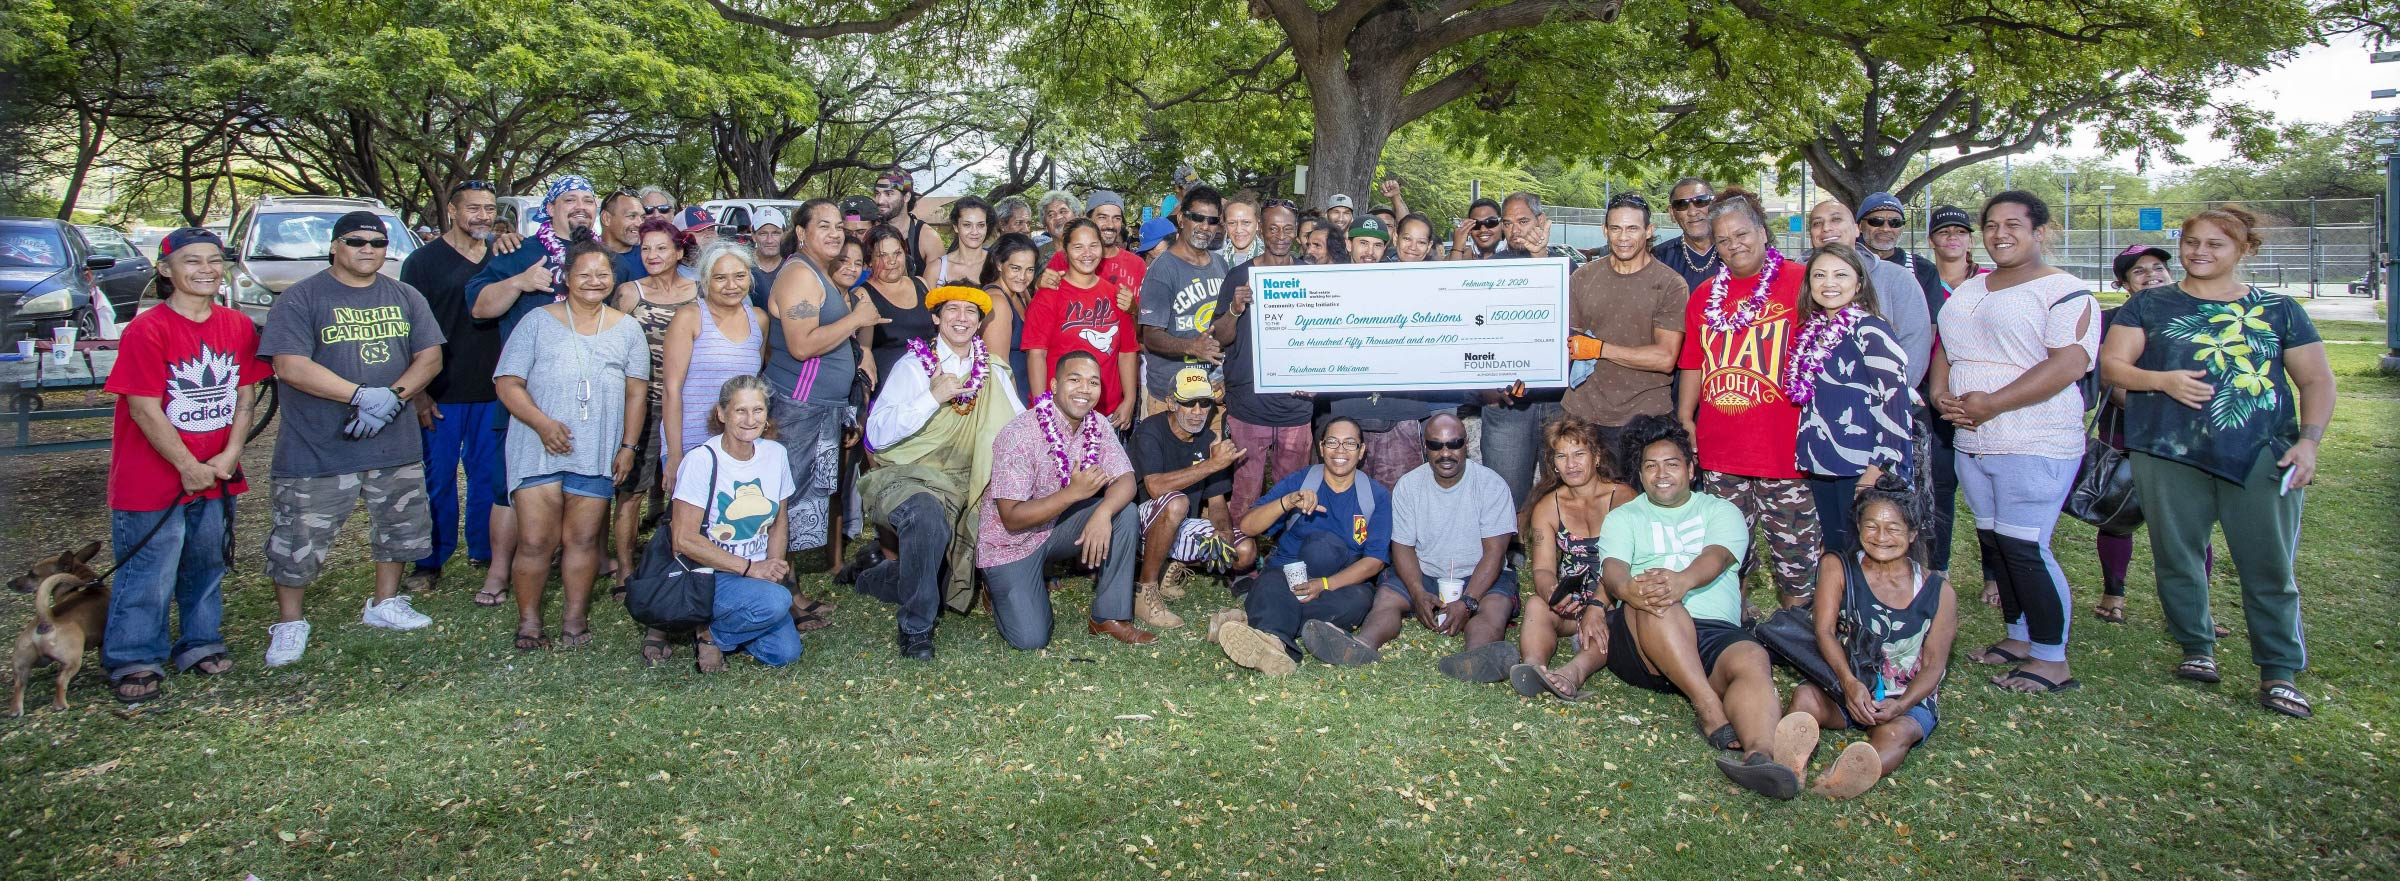 Pu'uhonua O Wai'anae Reaches Major Milestone with $150,000 Grant from Nareit Hawaii Community Giving Initiative